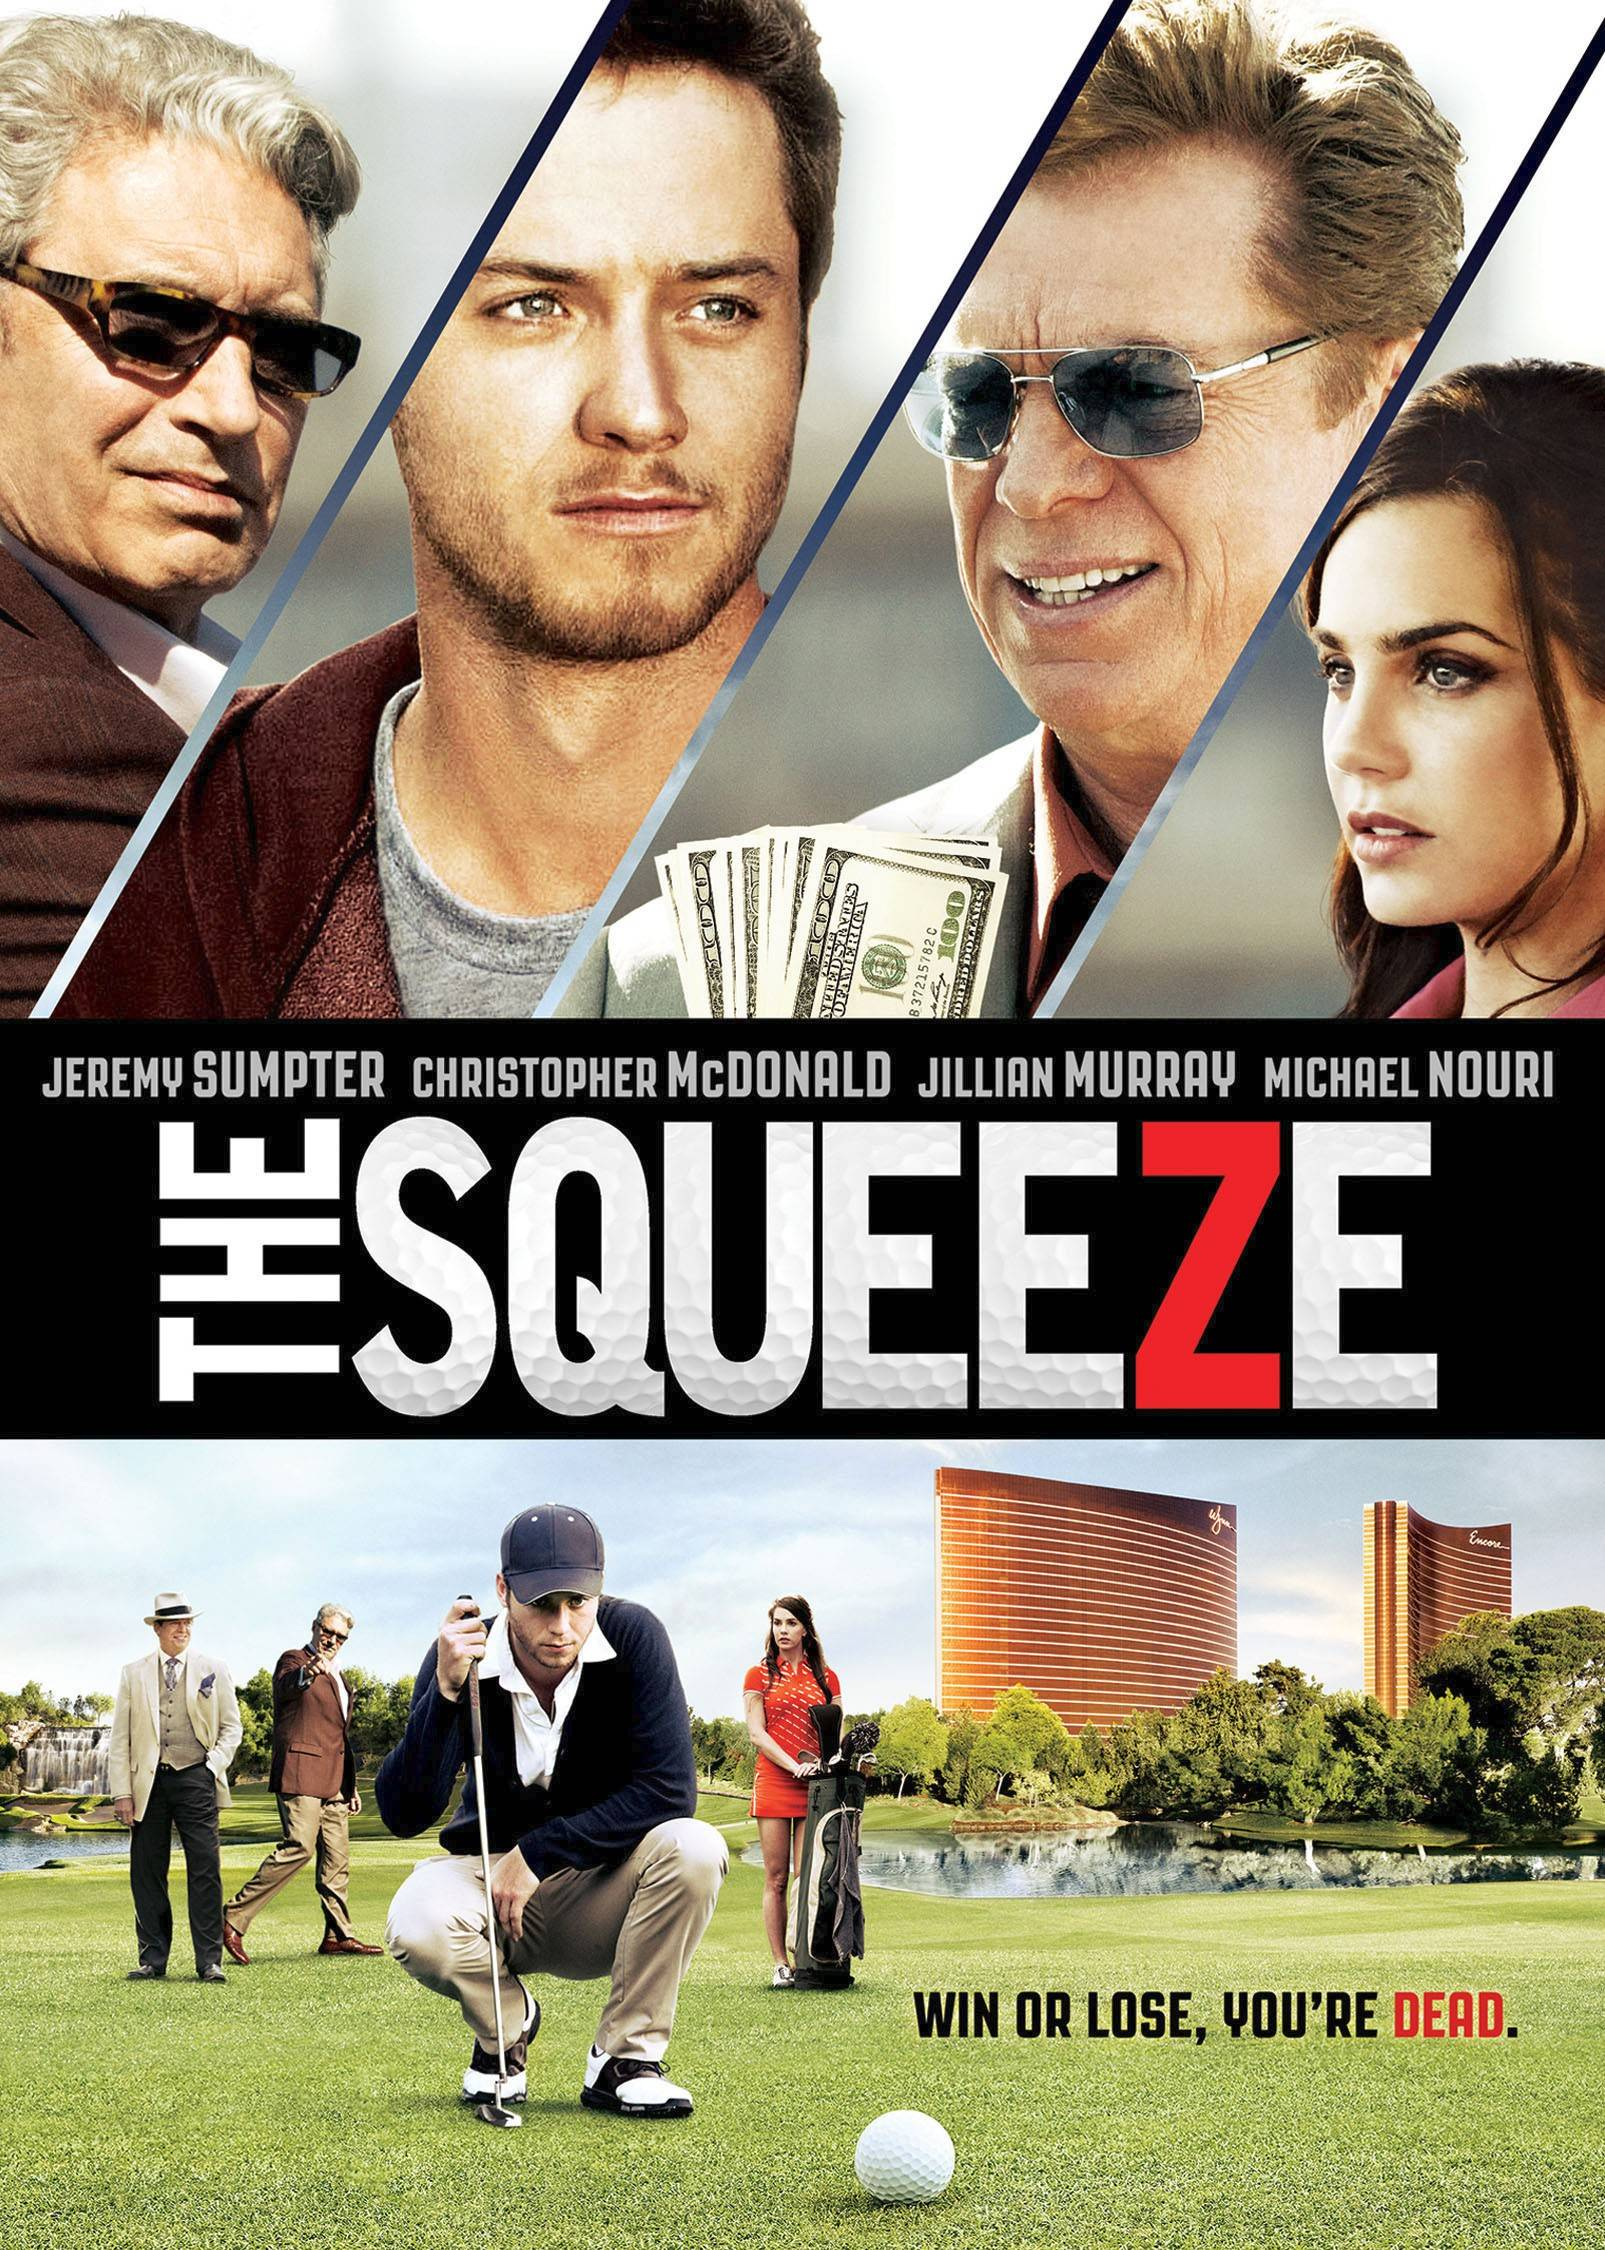 "A new golf movie, ""The Squeeze"" with Michael Nouri and Christopher McDonald, explores the dark side of golf and gambling when a young golfer is asked to do more than he wants."